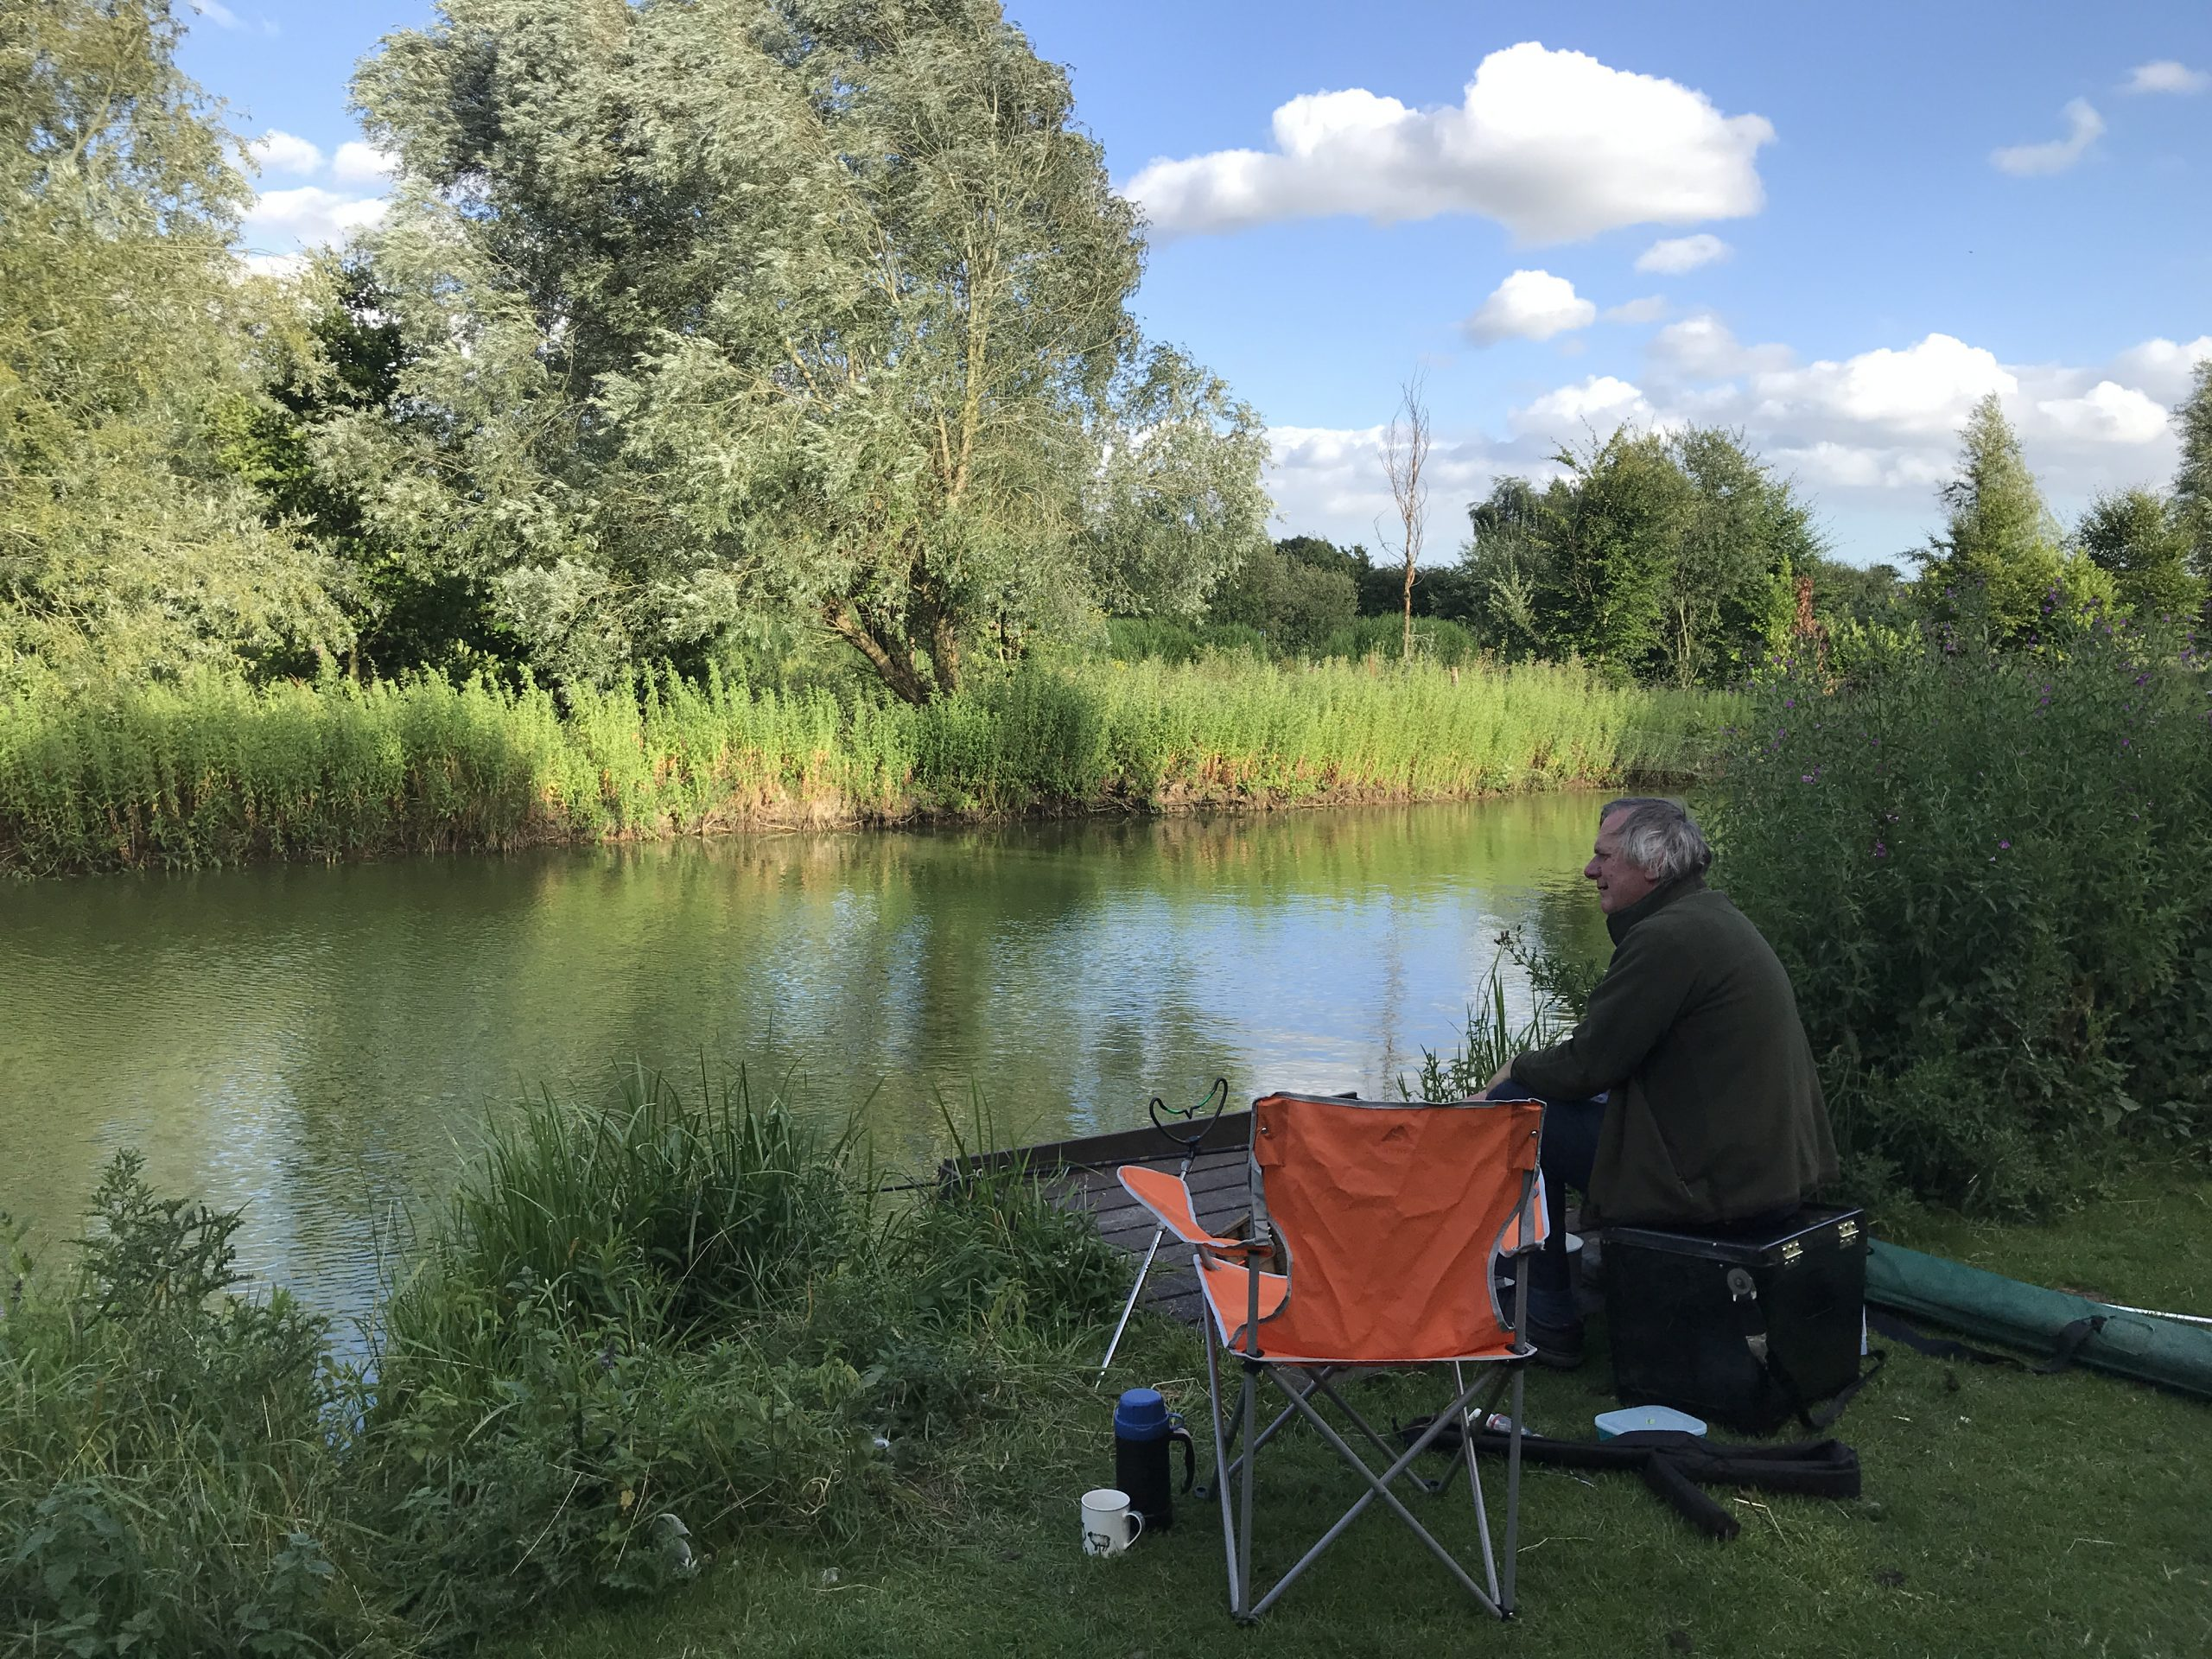 'Take A Friend Fishing' campaign runs until 19th July